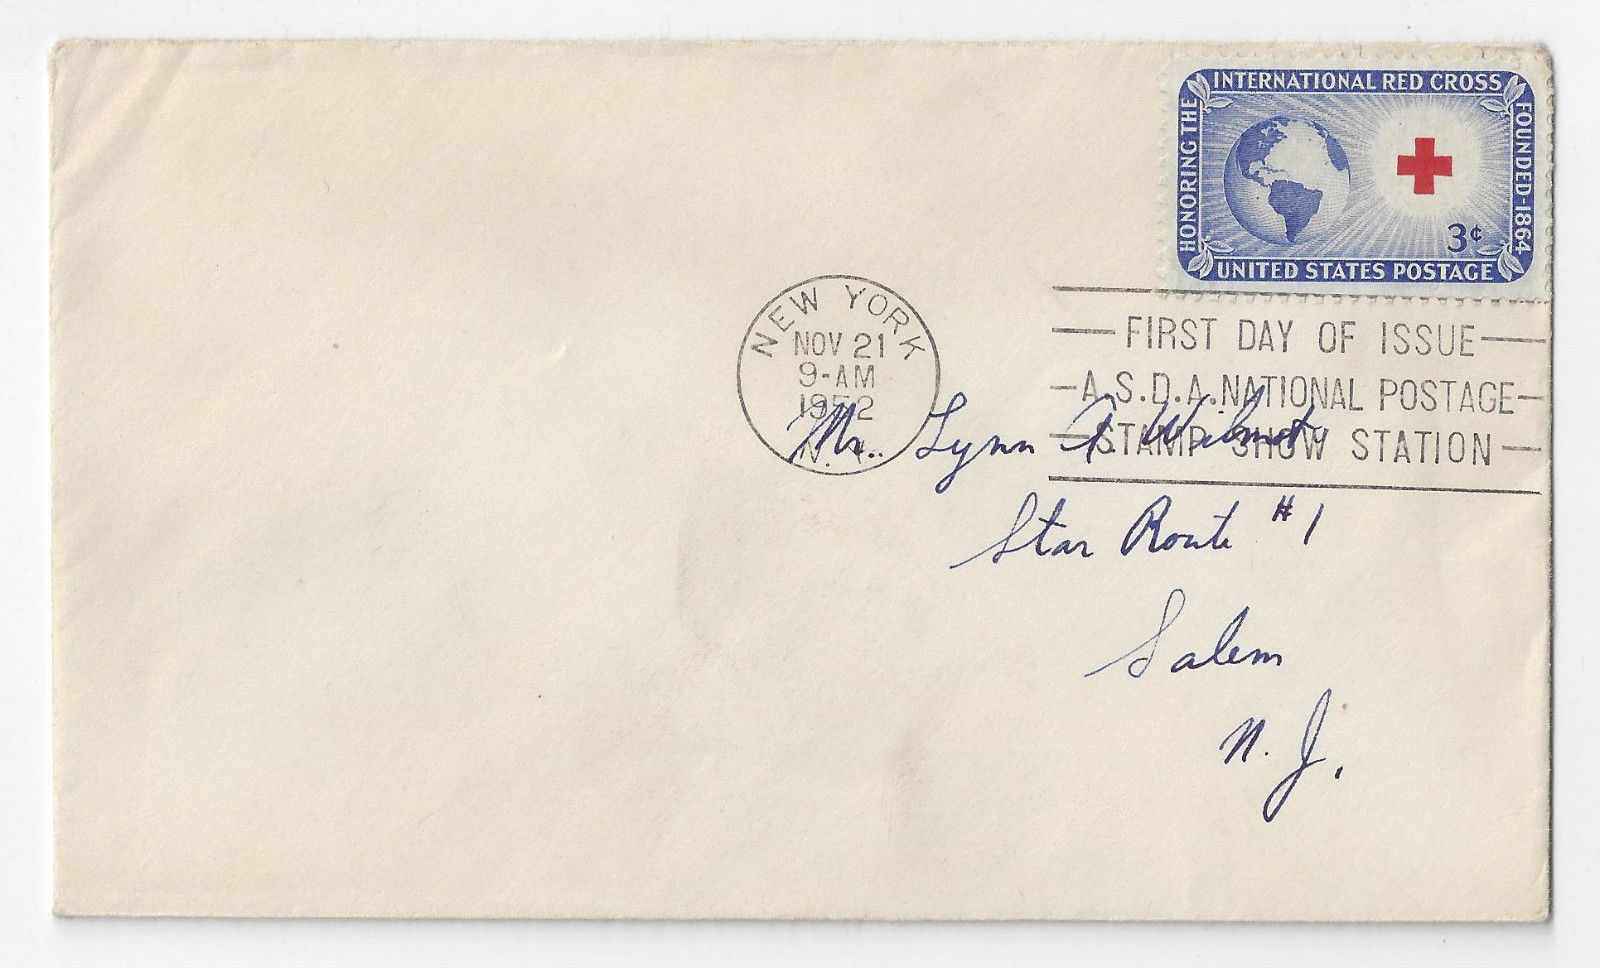 FDC Sc 1016 Red Cross Issue 1952 ASDA National Stamp Show Station